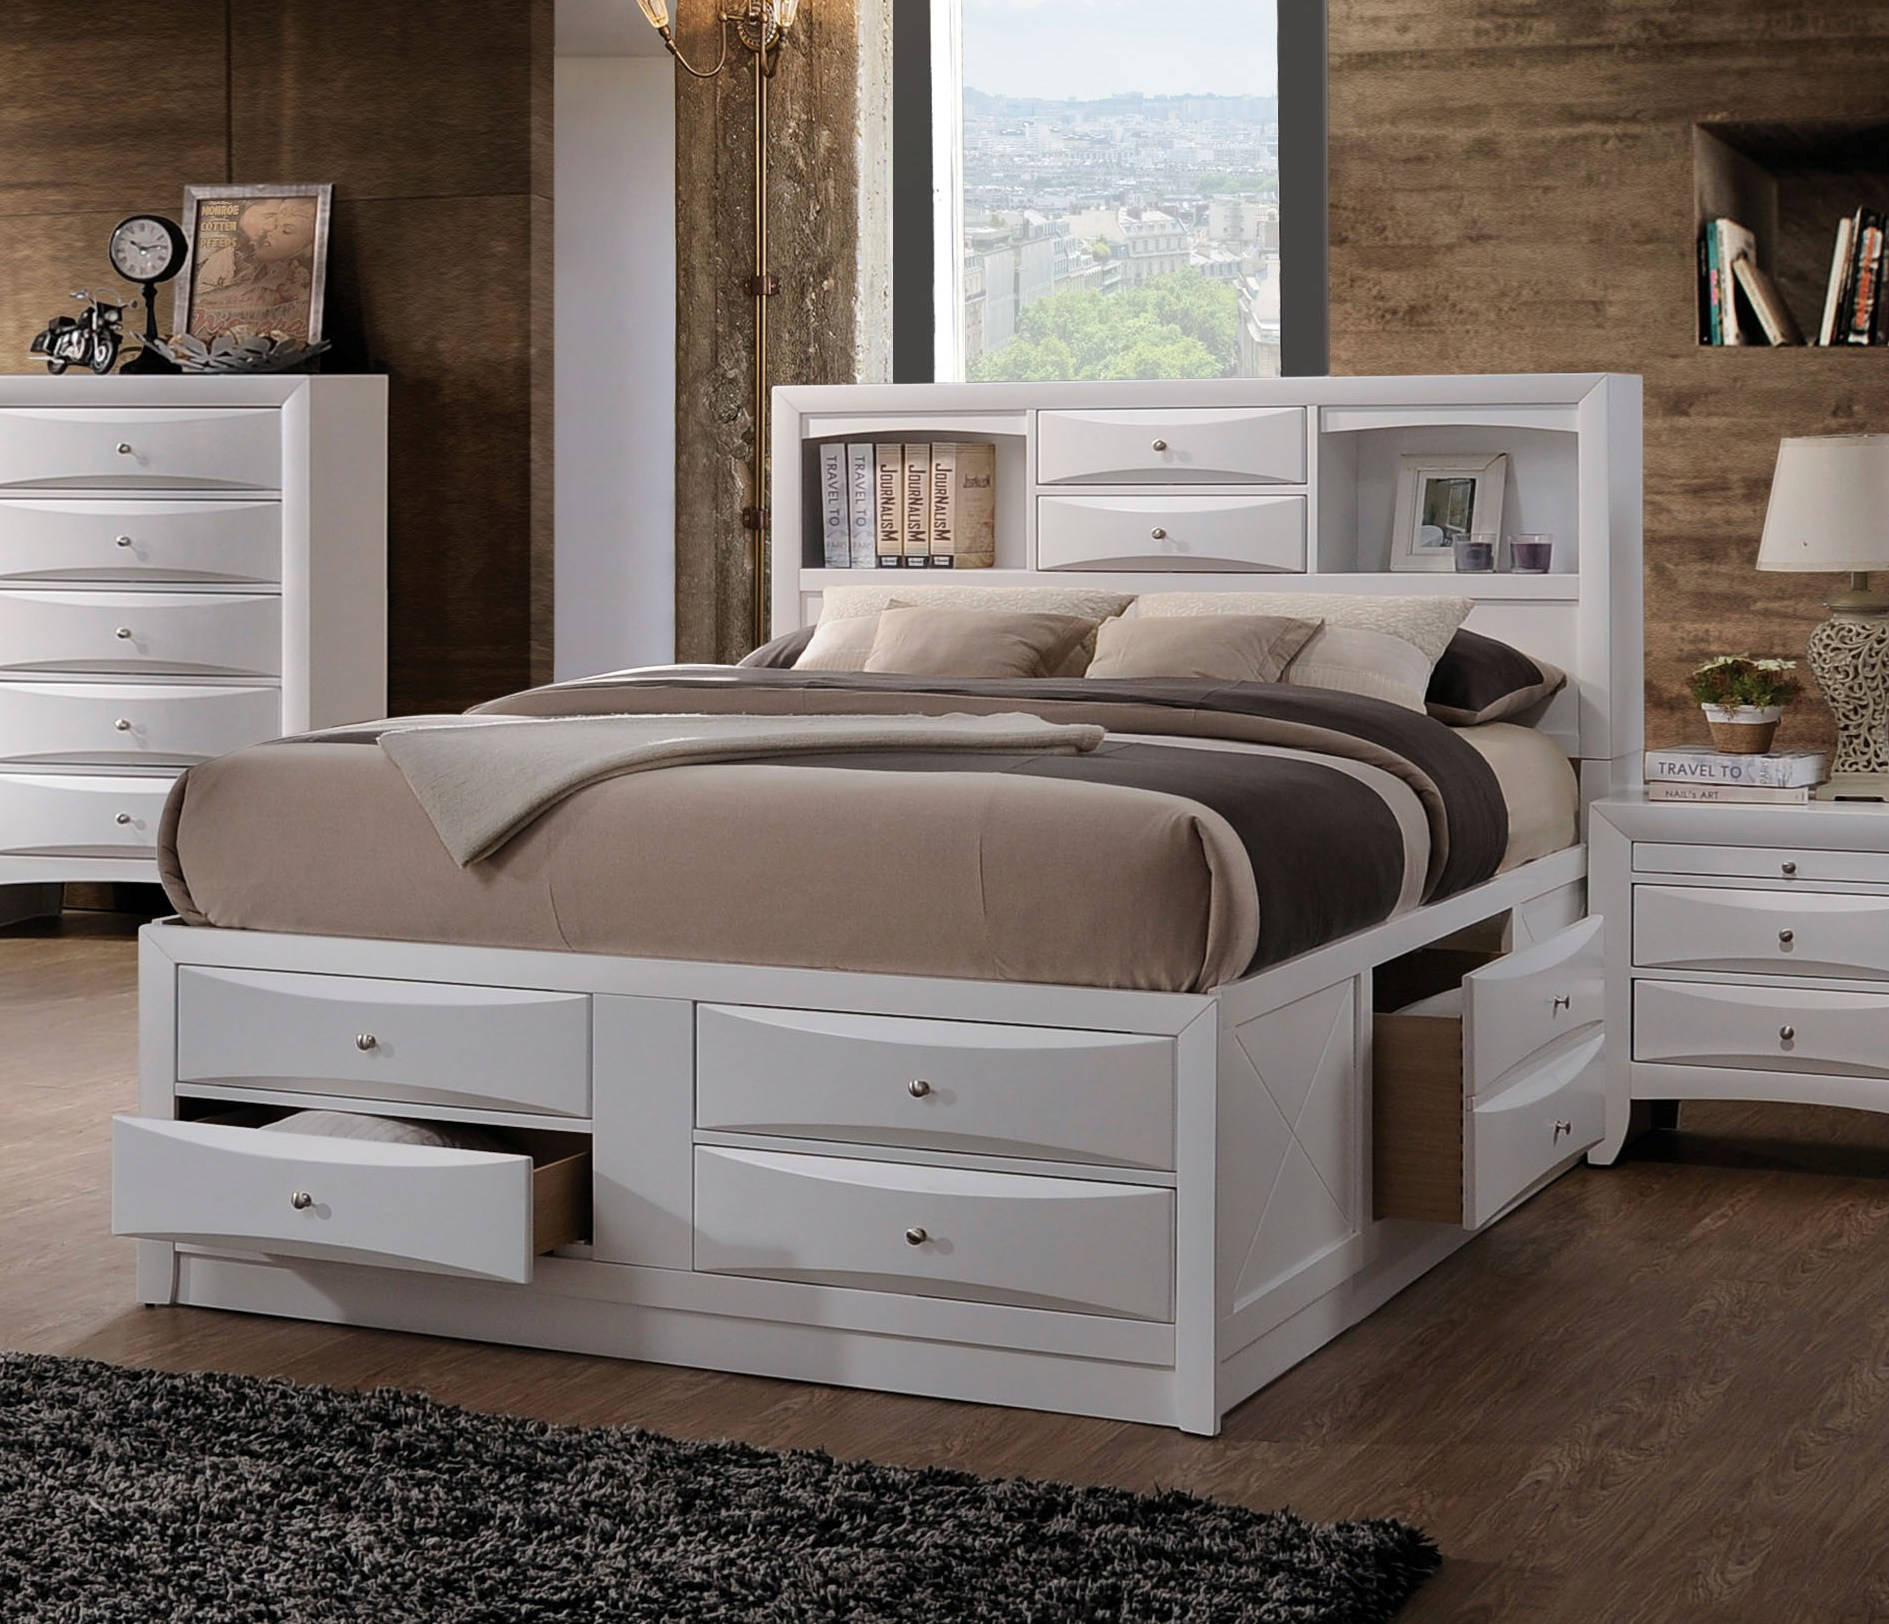 Acme Furniture Ireland White Queen Storage Bed Click To Enlarge ... & Acme Furniture Ireland White Queen Storage Bed | The Classy Home